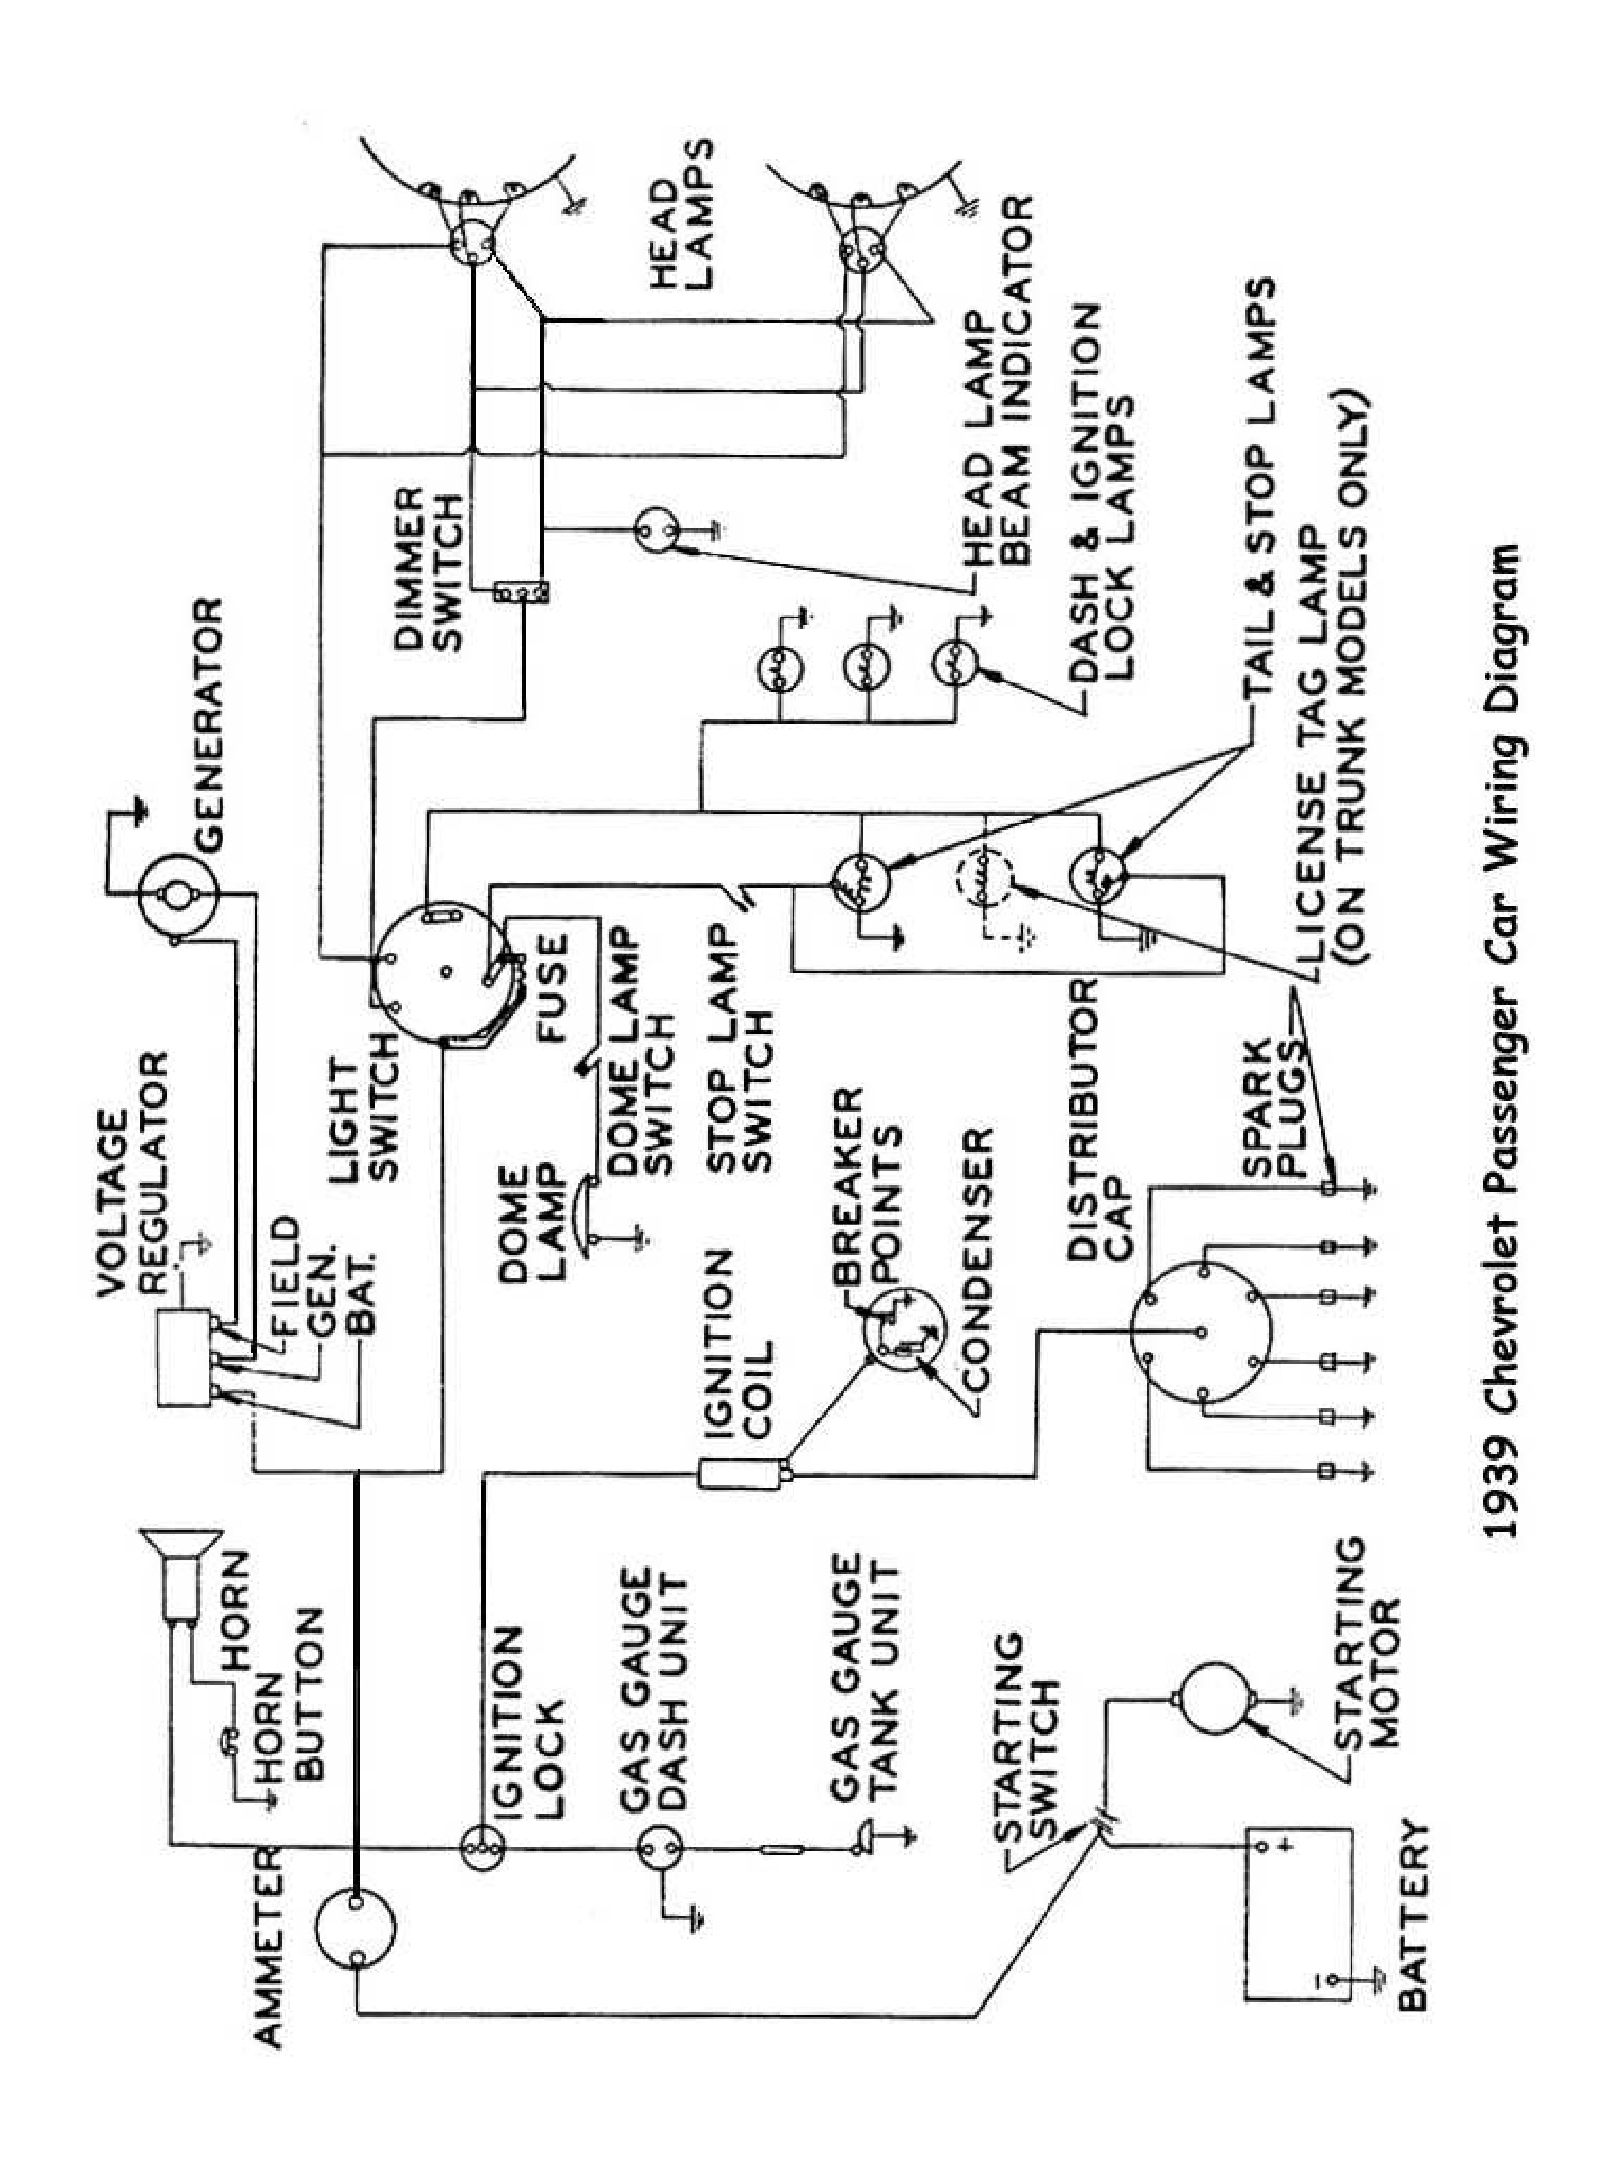 Chevy Silverado Drawing At Free For Personal Use Truck Fuel Gauge Wiring Diagram As Well 1977 1600x2164 Diagrams 683x768